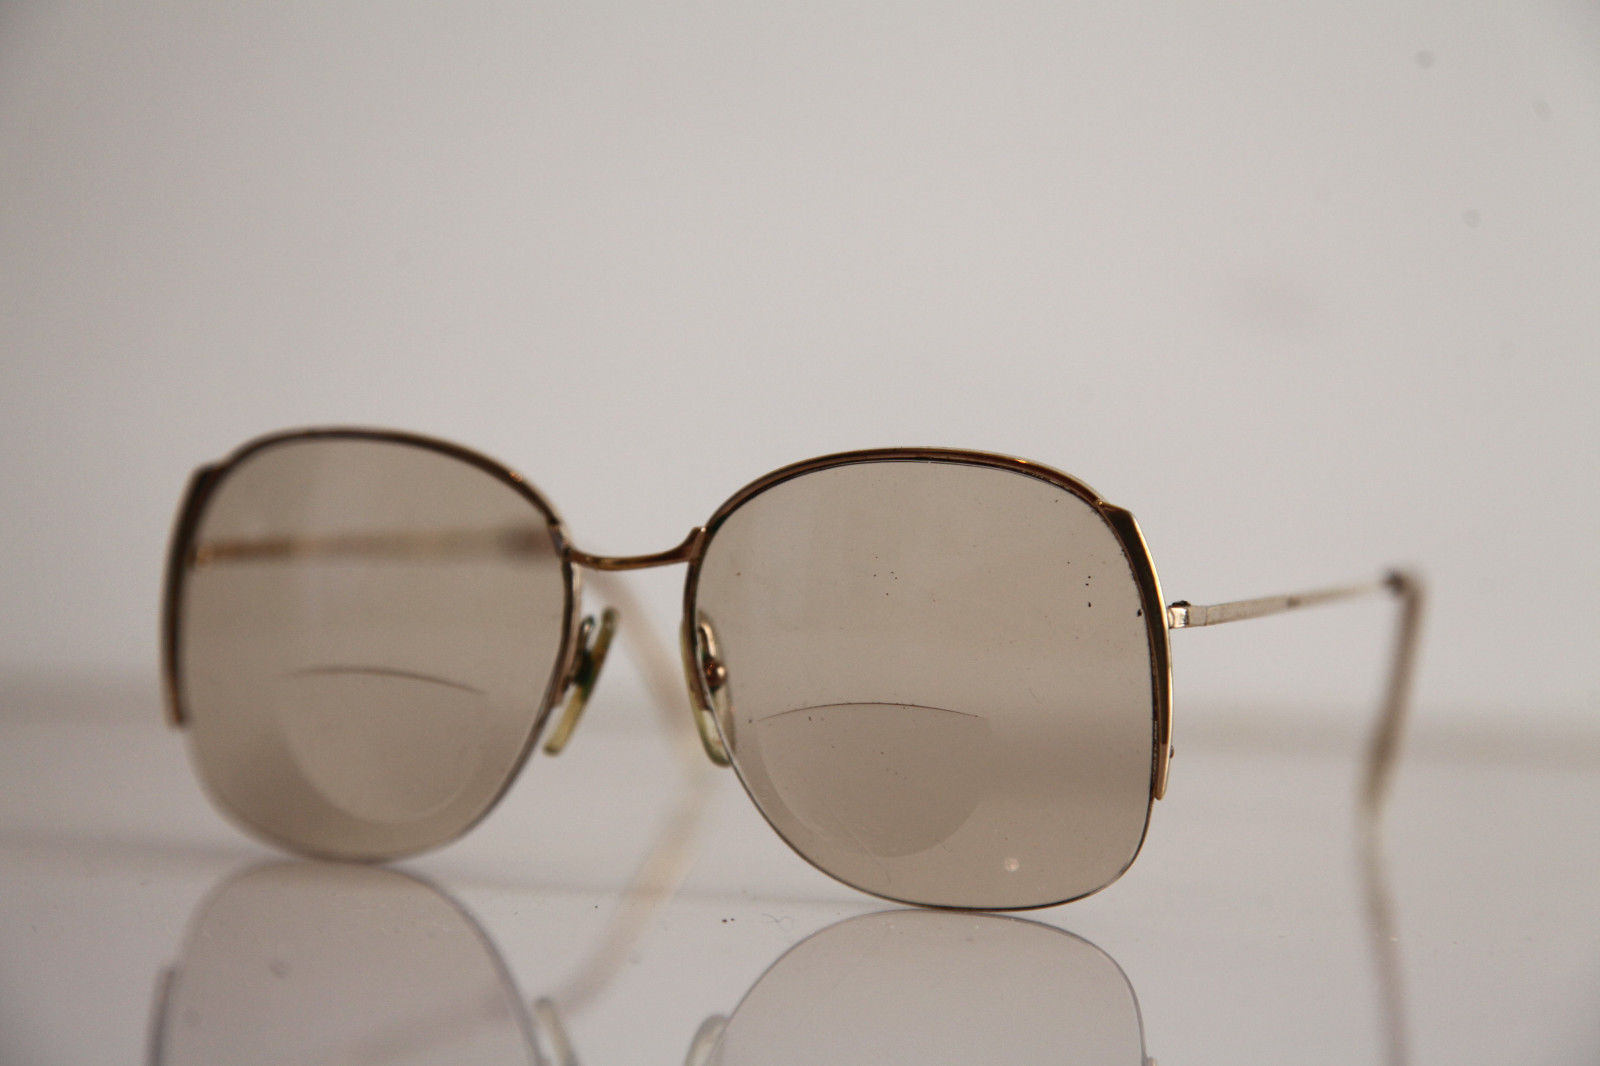 Eyewear, Gold Half Rimless Frame, RX-Able  Tinted Prescription lenses. image 3